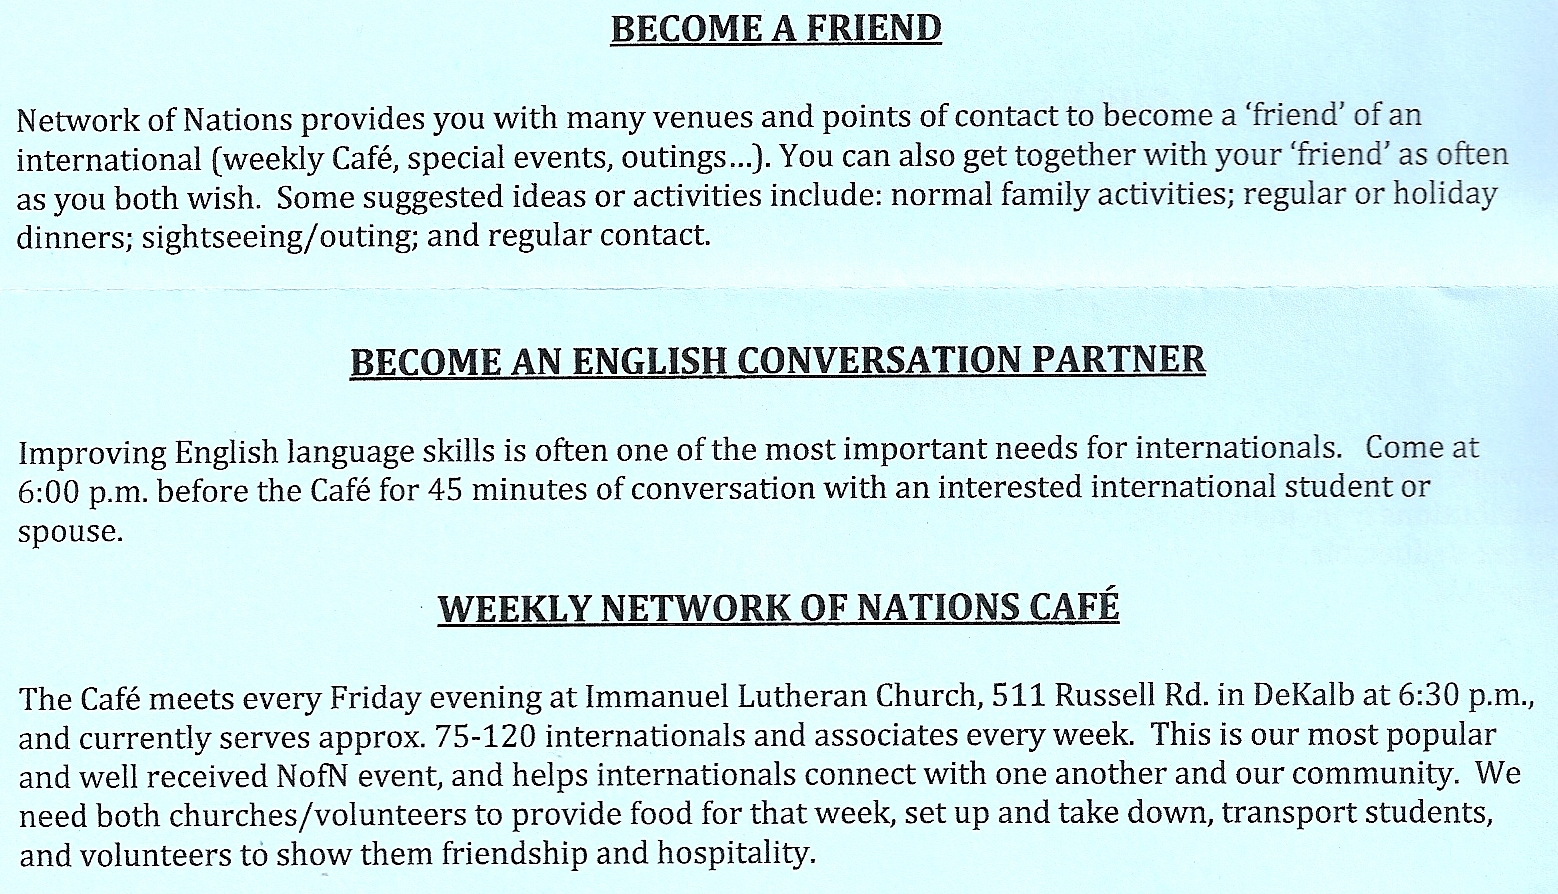 othe ways to get involved 2013